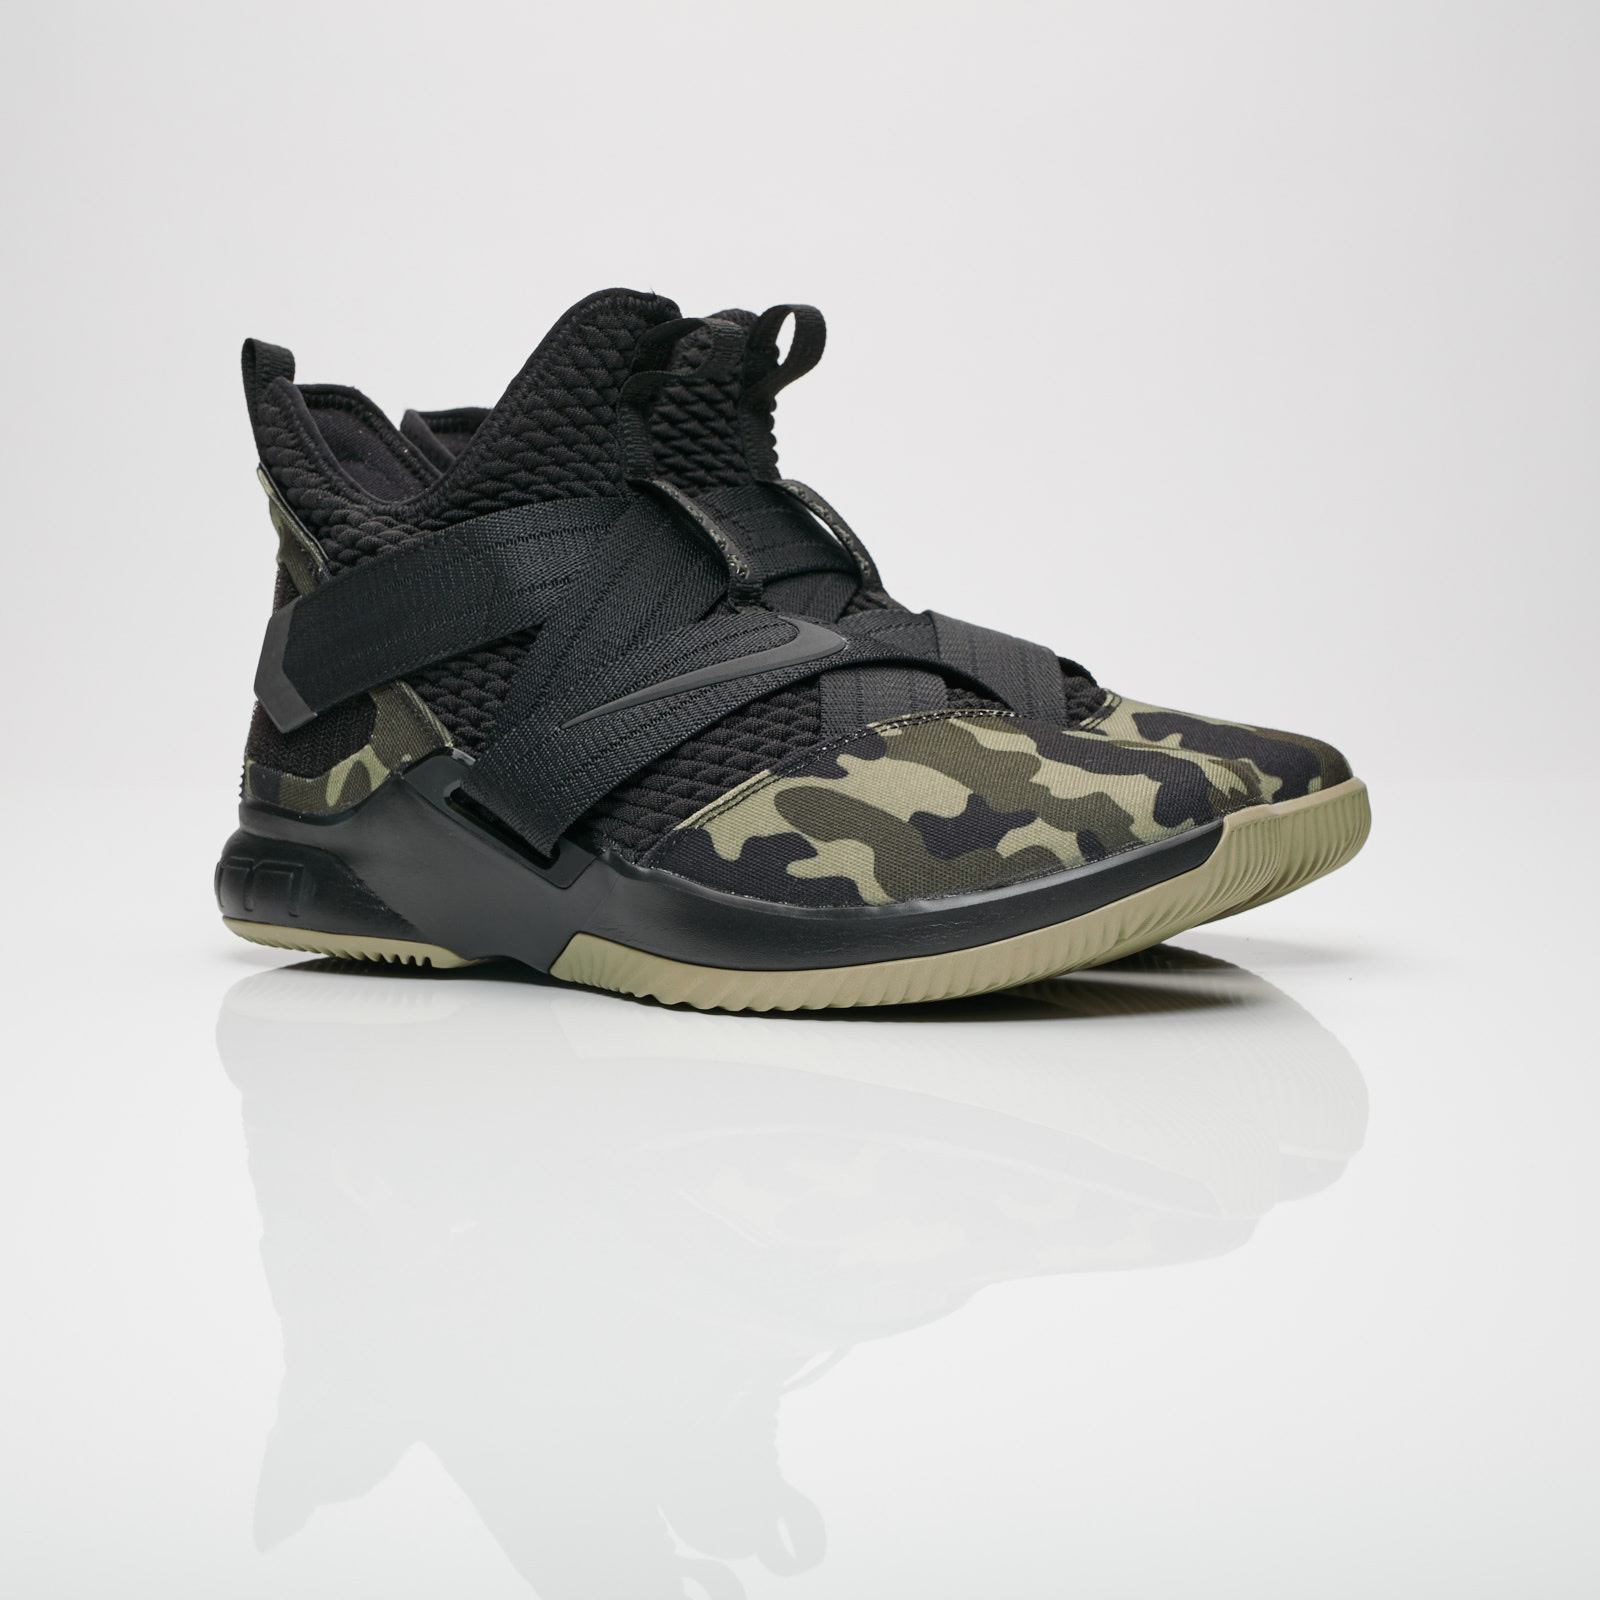 7f32fb32aef8f Nike Lebron Soldier XII SFG - Ao4054-001 - Sneakersnstuff